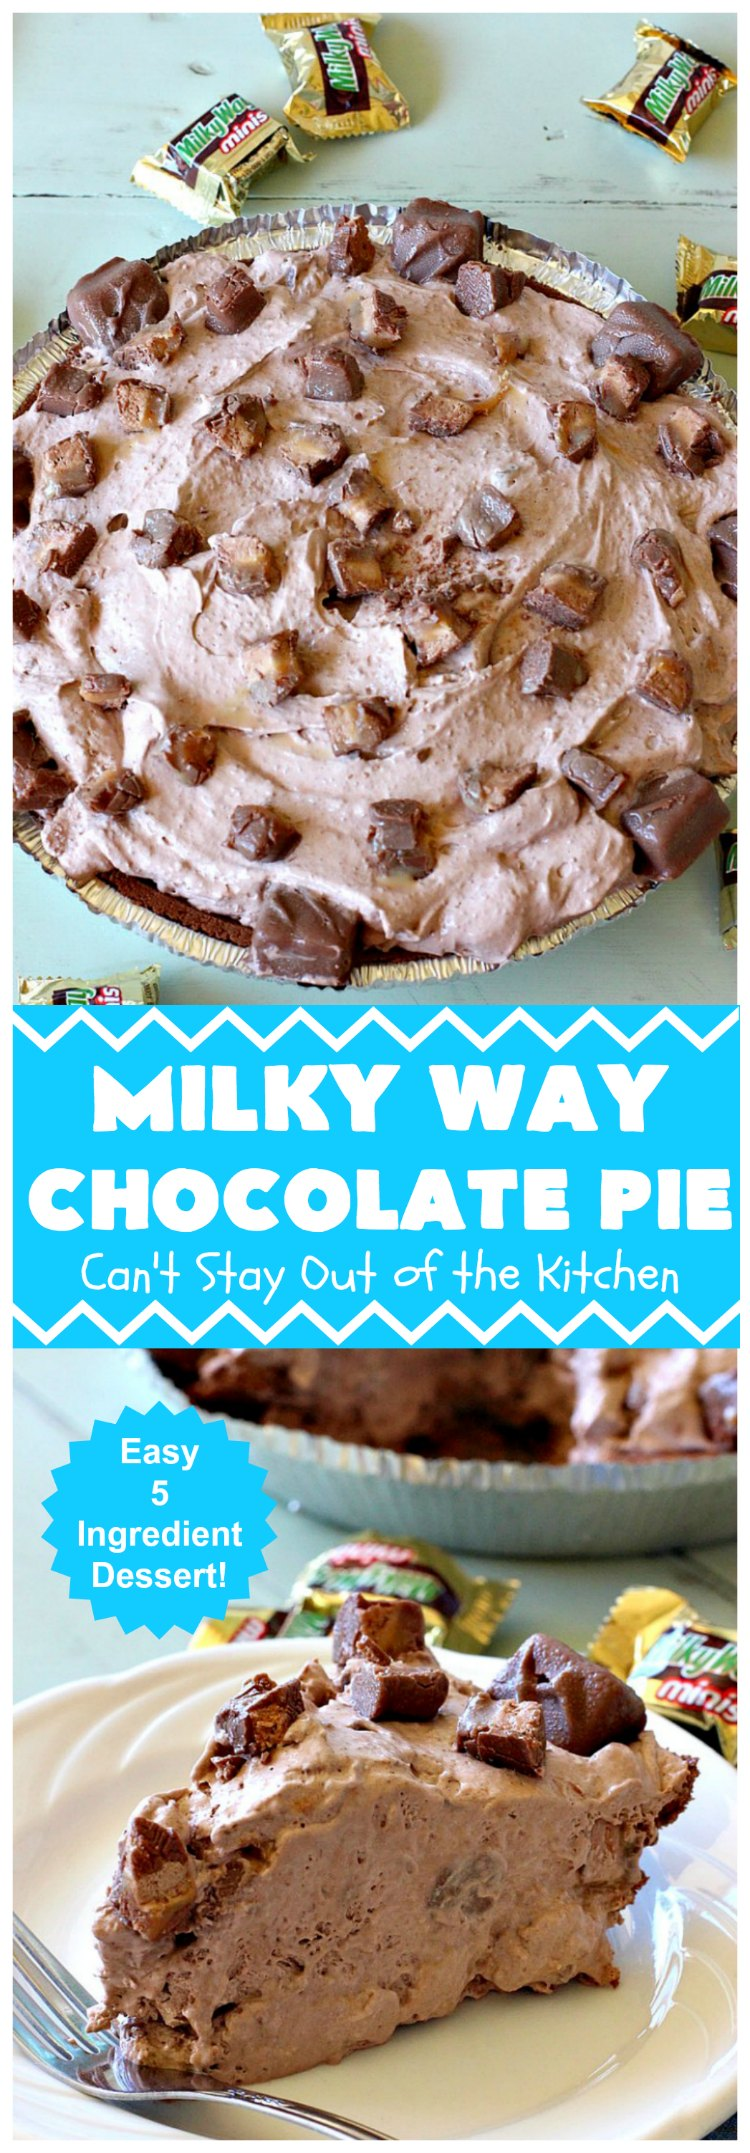 Milky Way Chocolate Pie | Can't Stay Out of the Kitchen | This sensational #ChocolatePie is rich, decadent, gooey, chocolaty & absolutely amazing. It's filled with #MilkyWayBars and is marvelous for a #holiday or company #dessert. #pie #chocolate #MilkyWayCandyBars #ChocolateDessert #MilkyWayDessert #MilkyWayChocolatePie